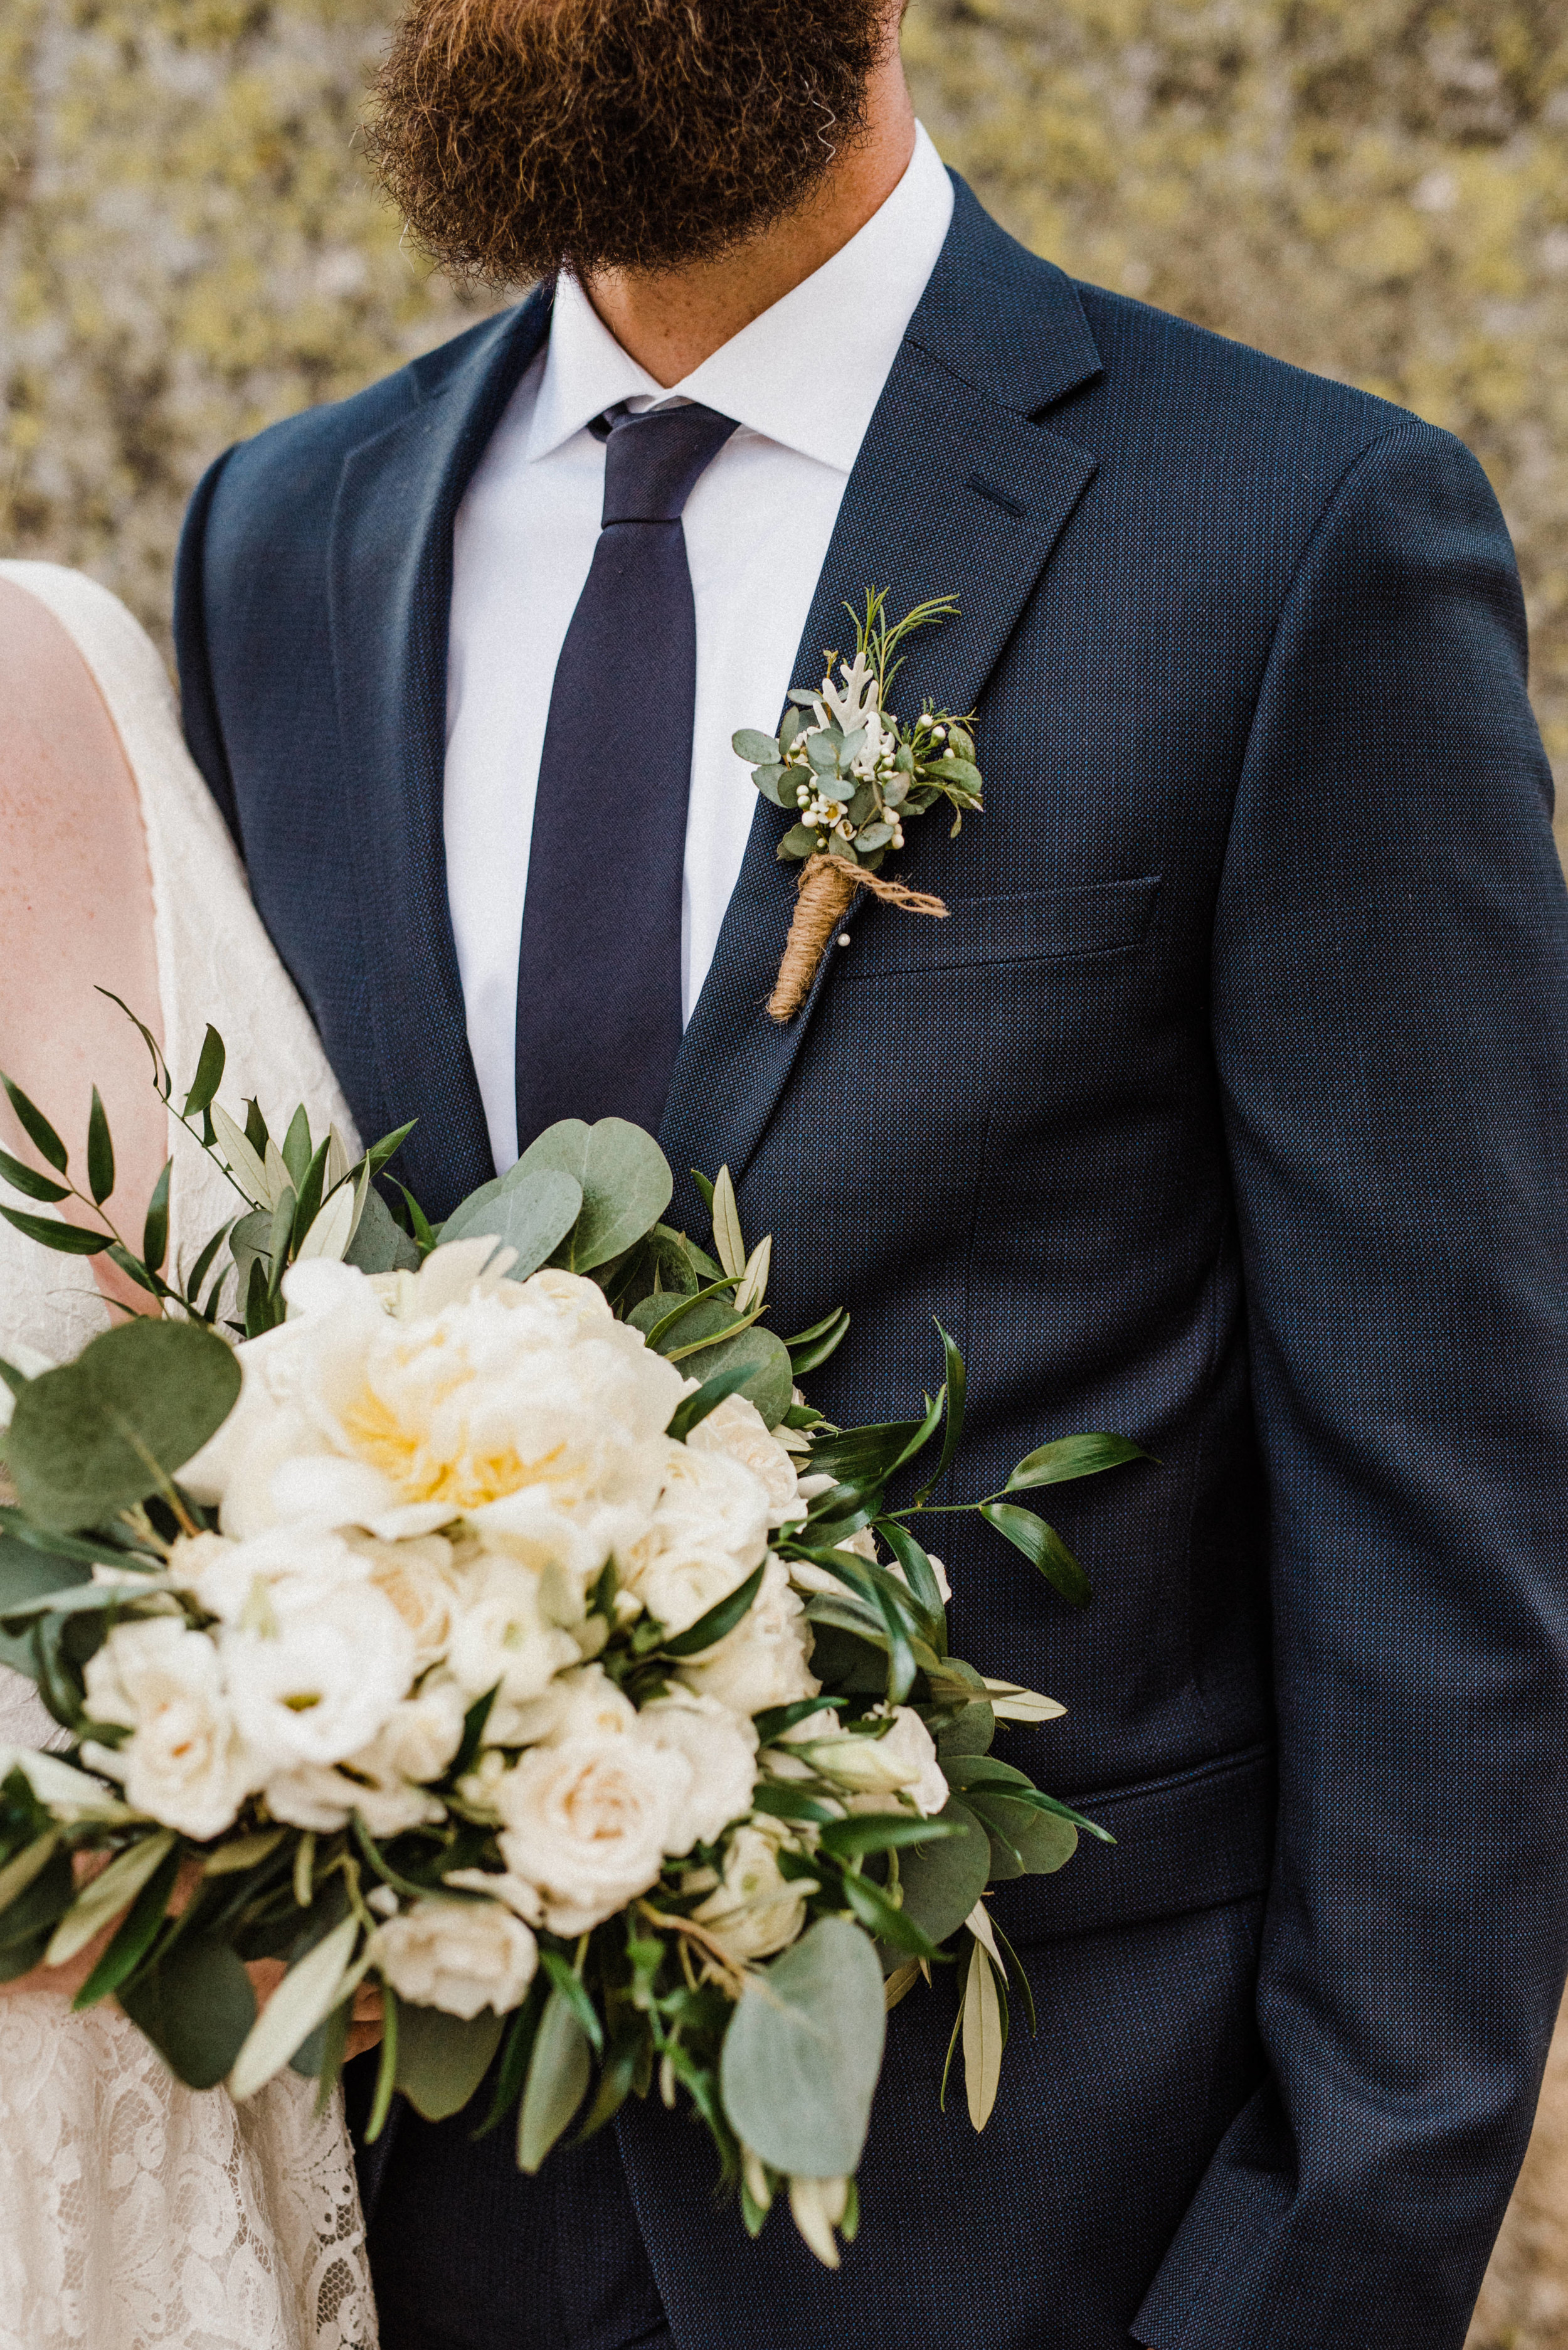 Romantic and classic eucalyptus and white rose floral bouquet and boutonniere at Glacier Point elopement